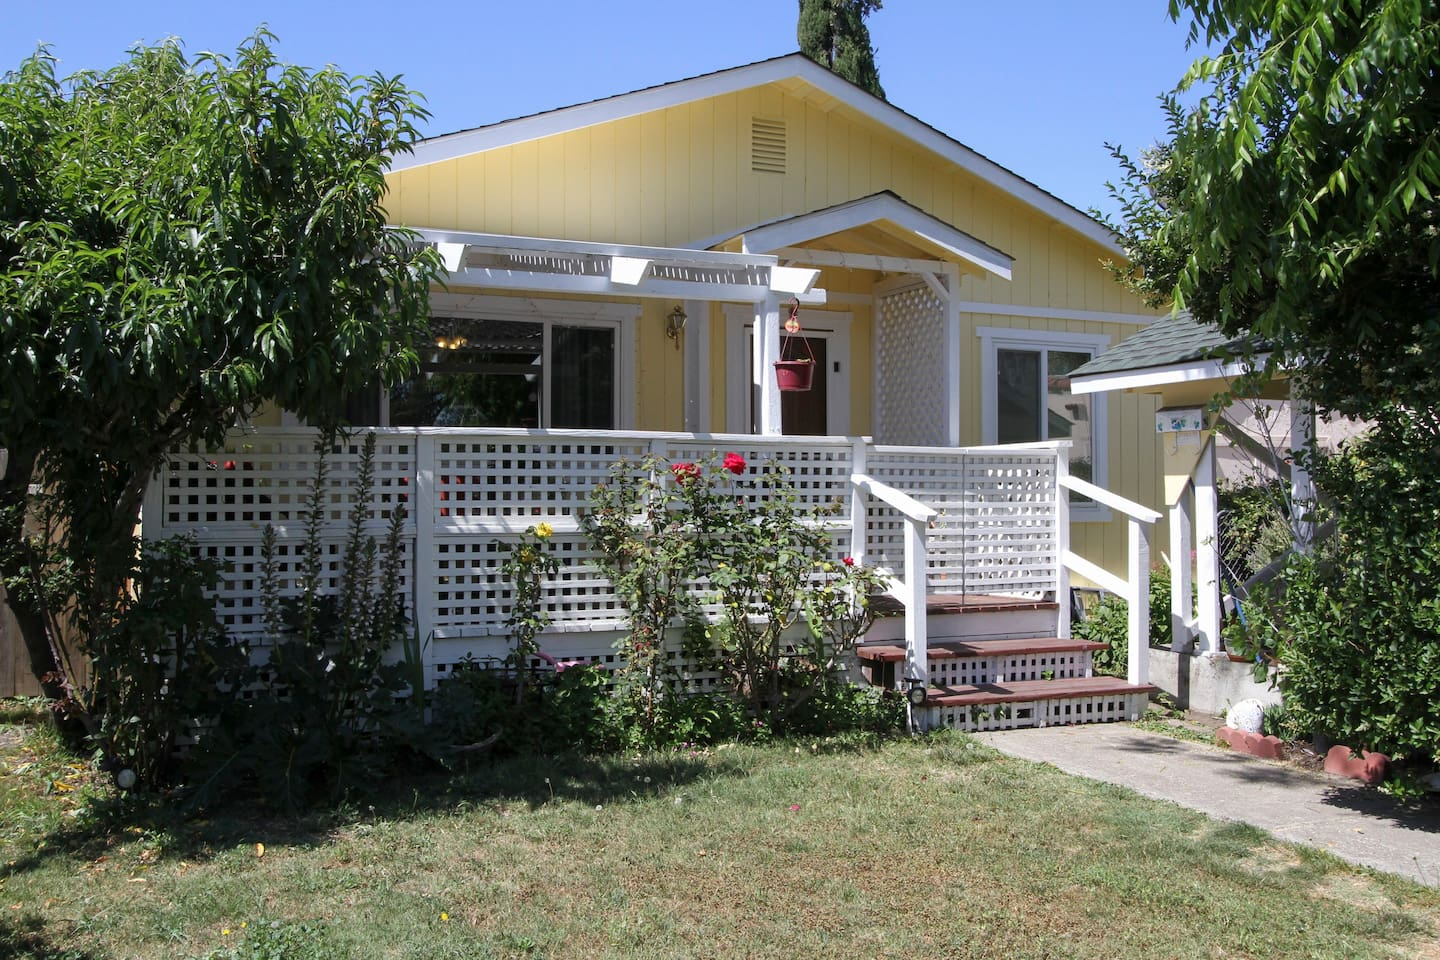 Front of house, Luther Burbank Garden's Hideaway! Wi-fi enabled,  we offer a level of comfort, security, quiet, and privacy, that would not be found in an inexpensive motel room. Airbnb hosts now four years, super hosts for the past two years.